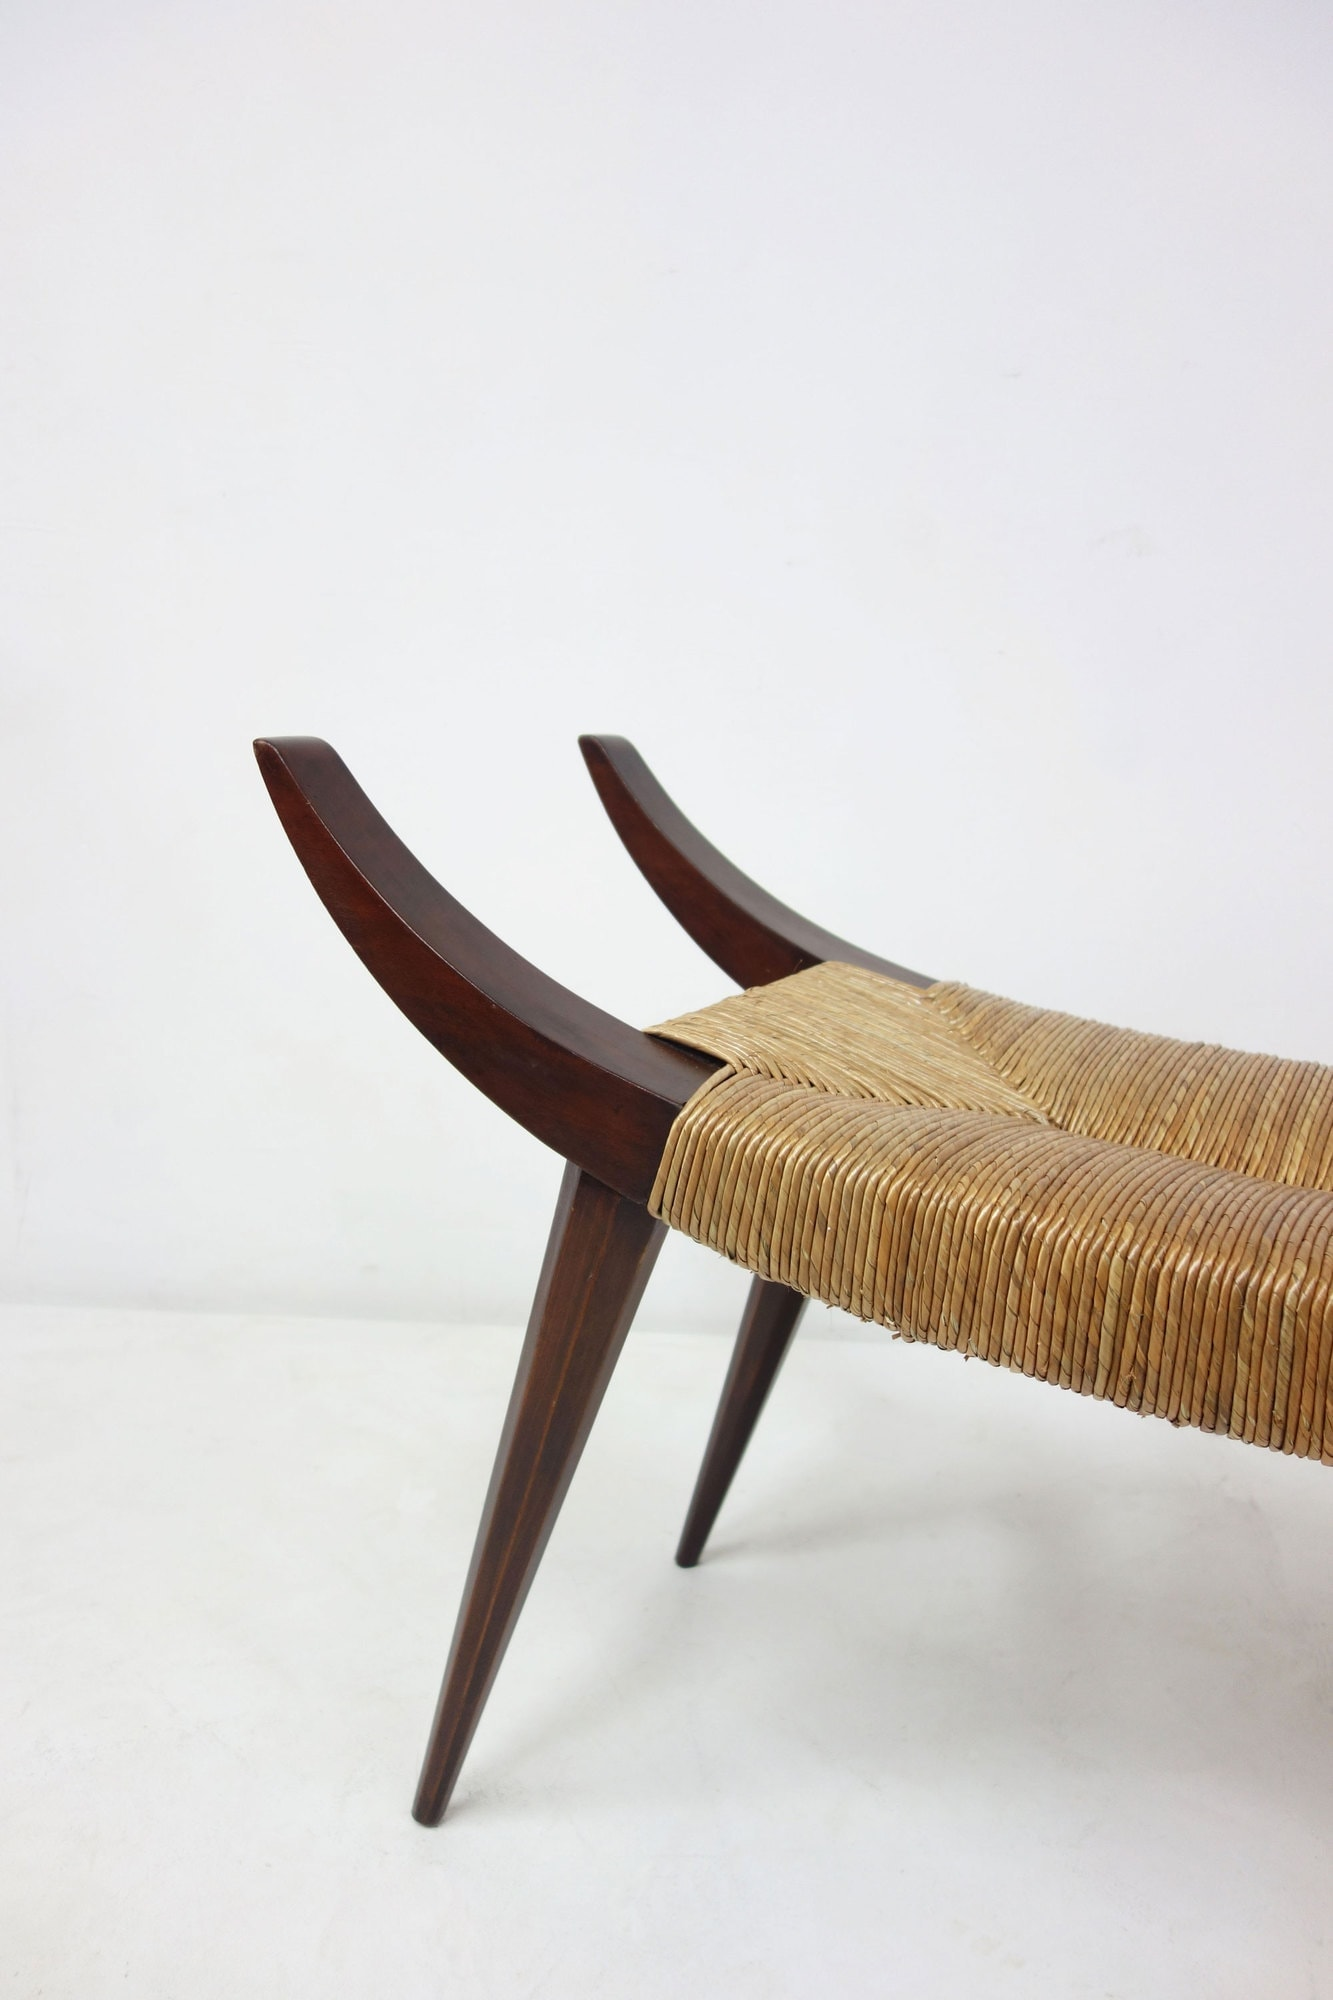 Victor Courtray, Important tabouret, vue 02